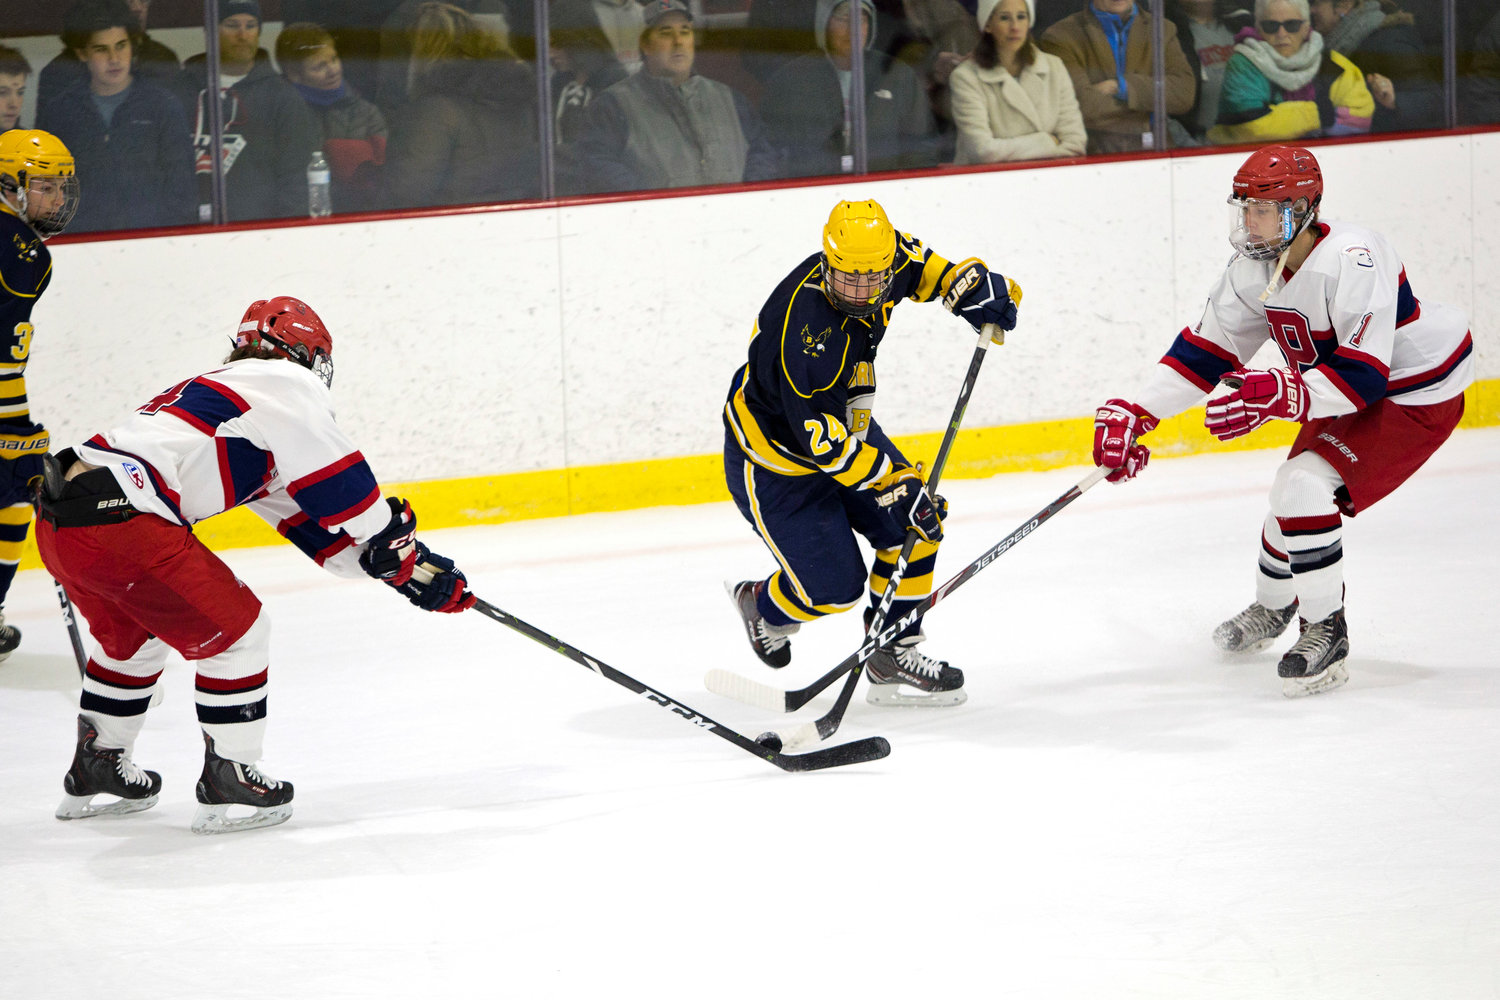 Barrington's Matthew Bates splits a pair of Portsmouth opponents while controlling the puck.